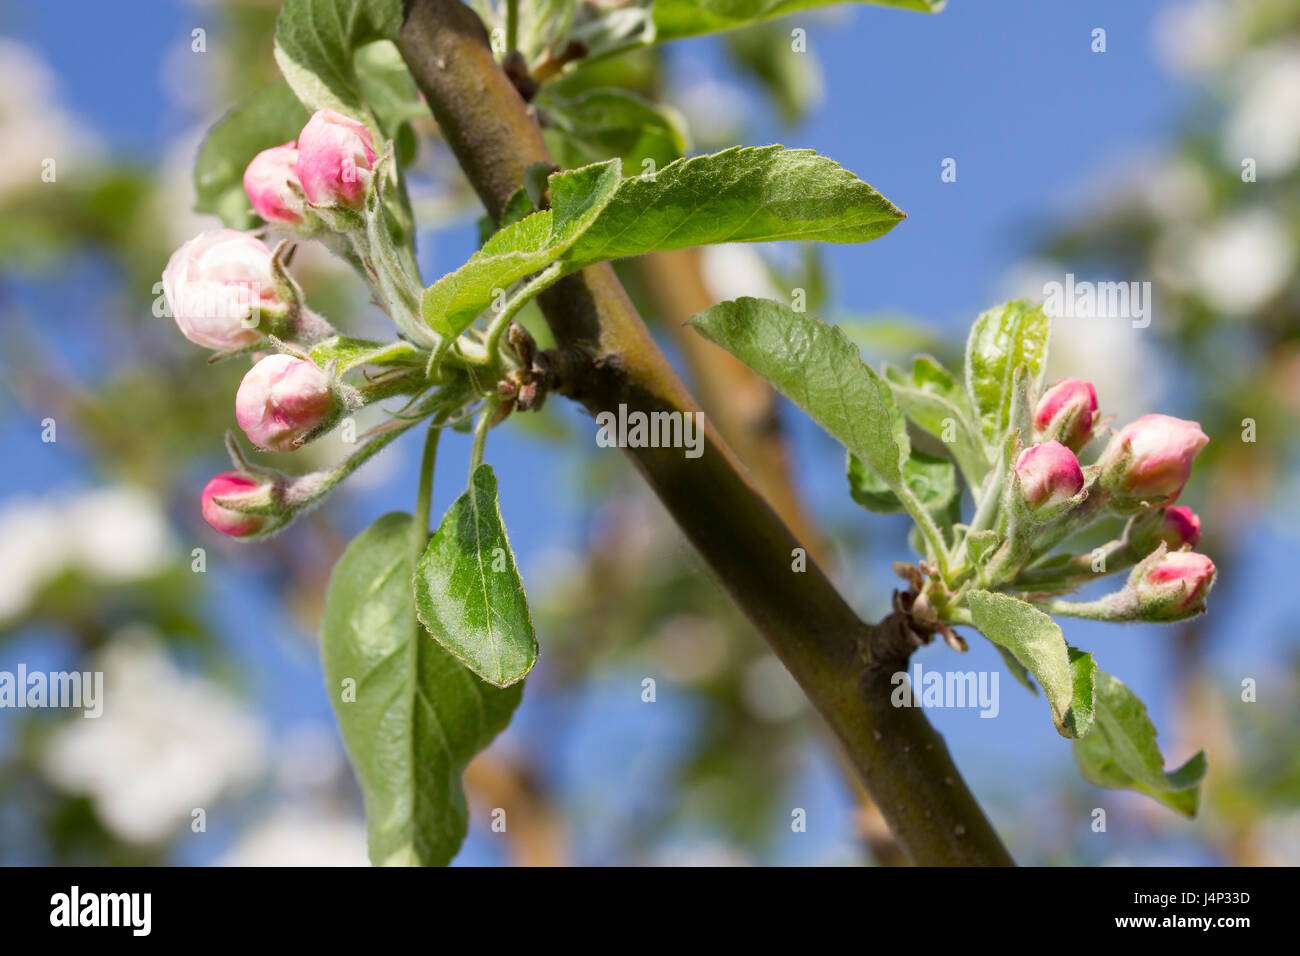 bluming apple tree on sky background - Stock Image